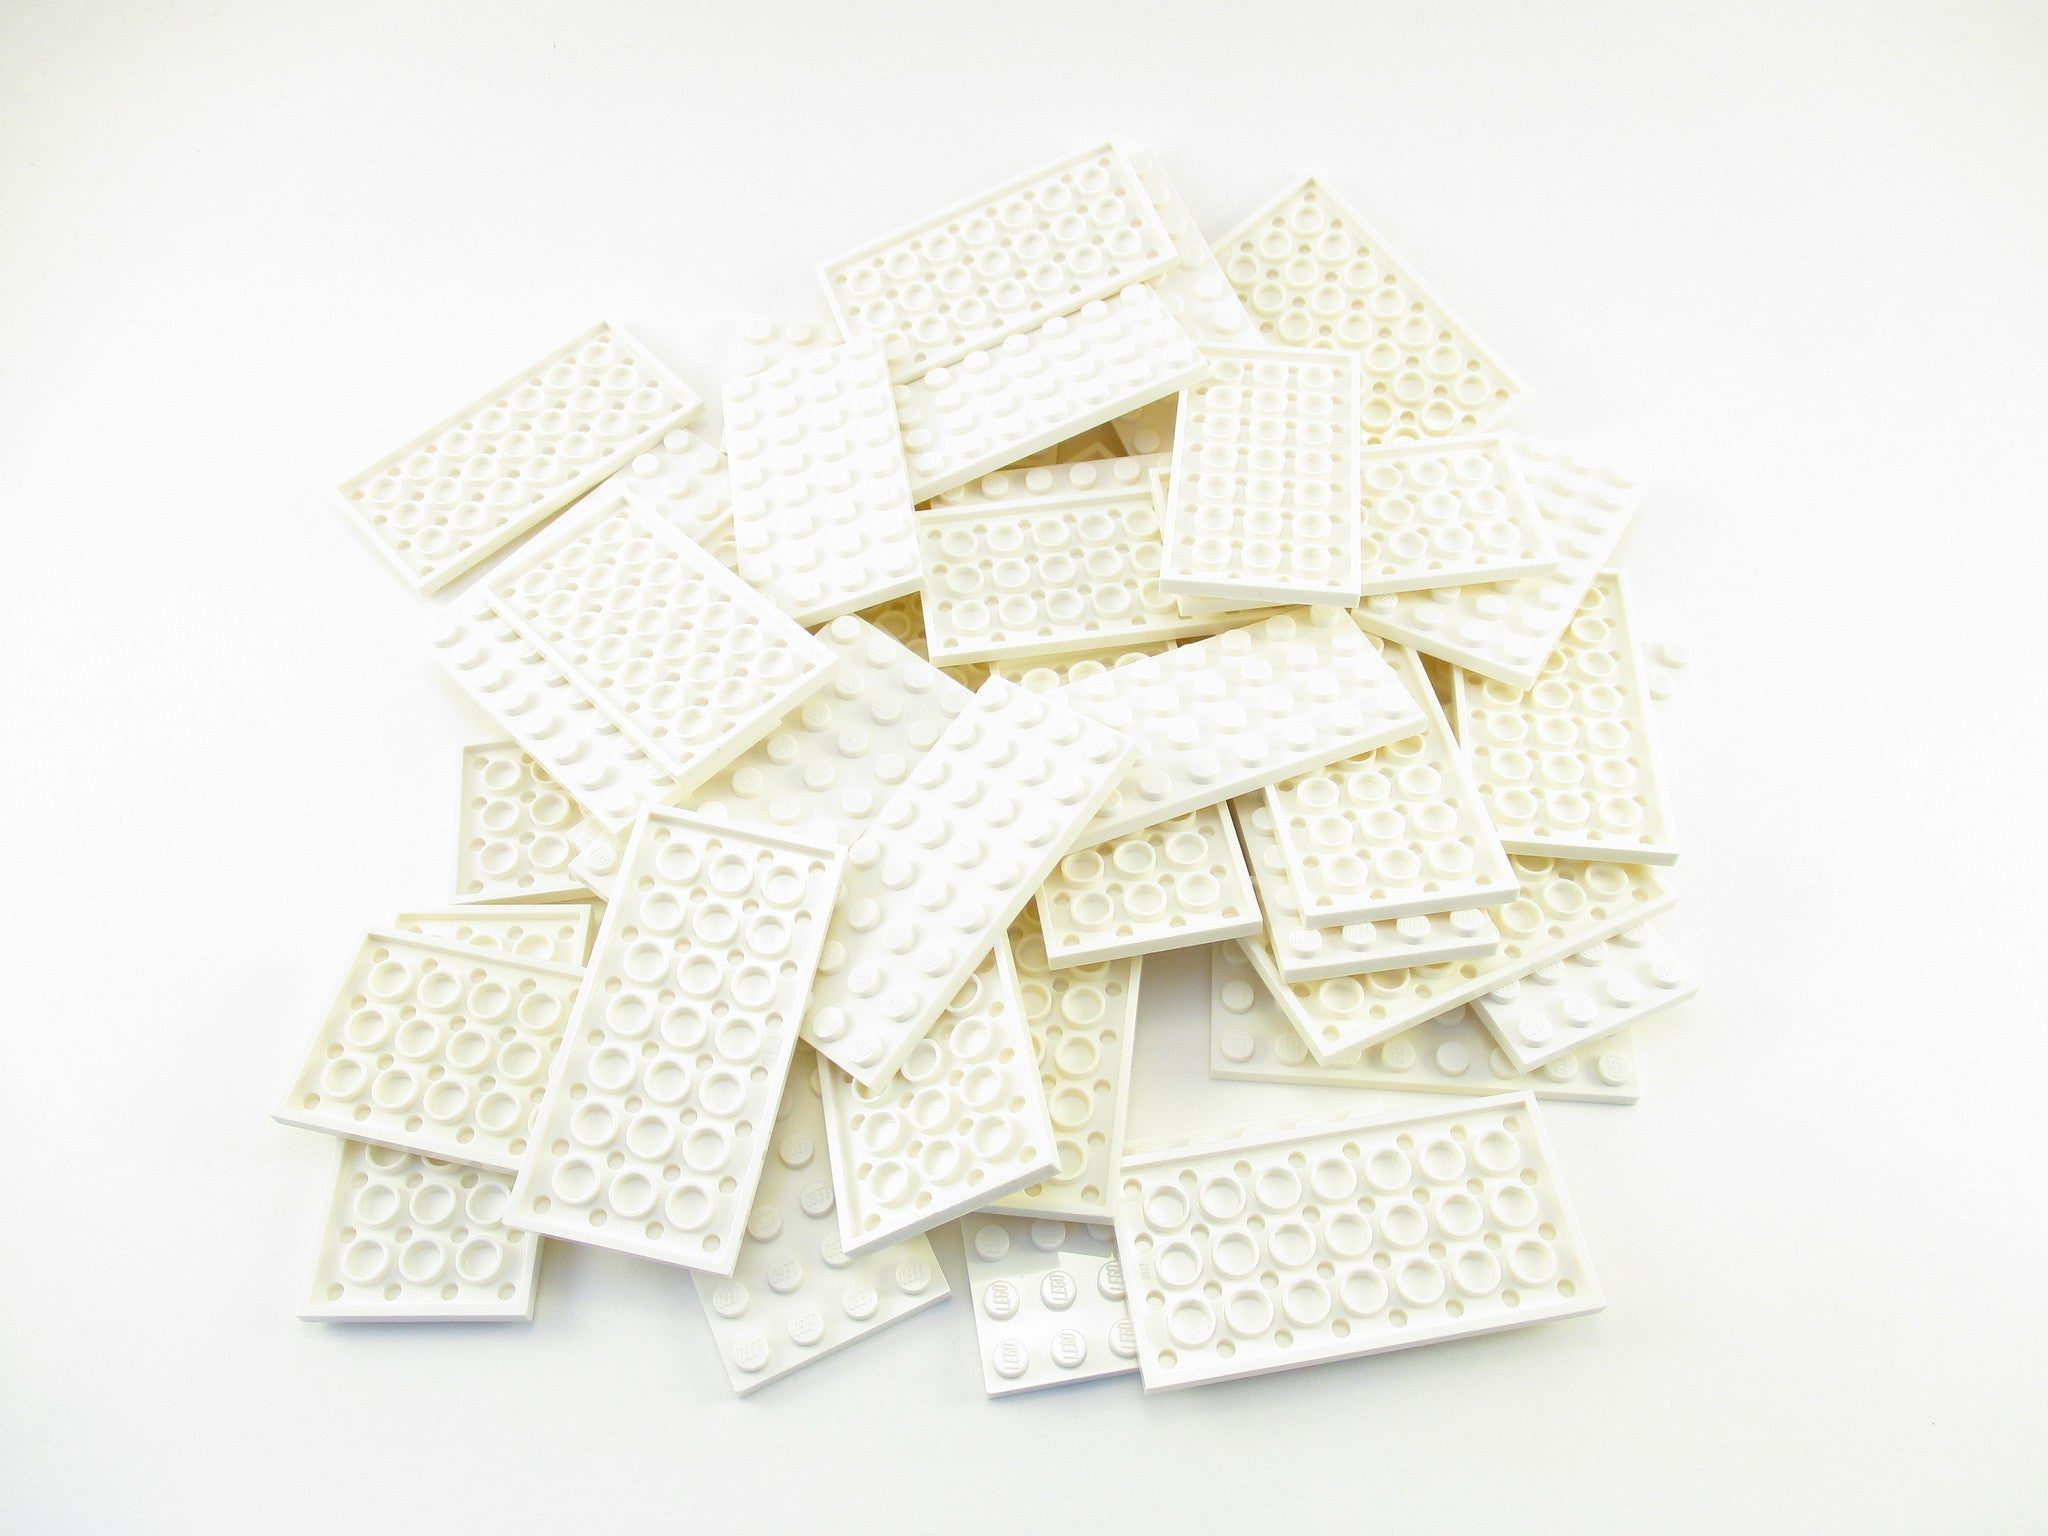 LEGO White Plate 4x8 Lot of 50 Parts Pieces 3035